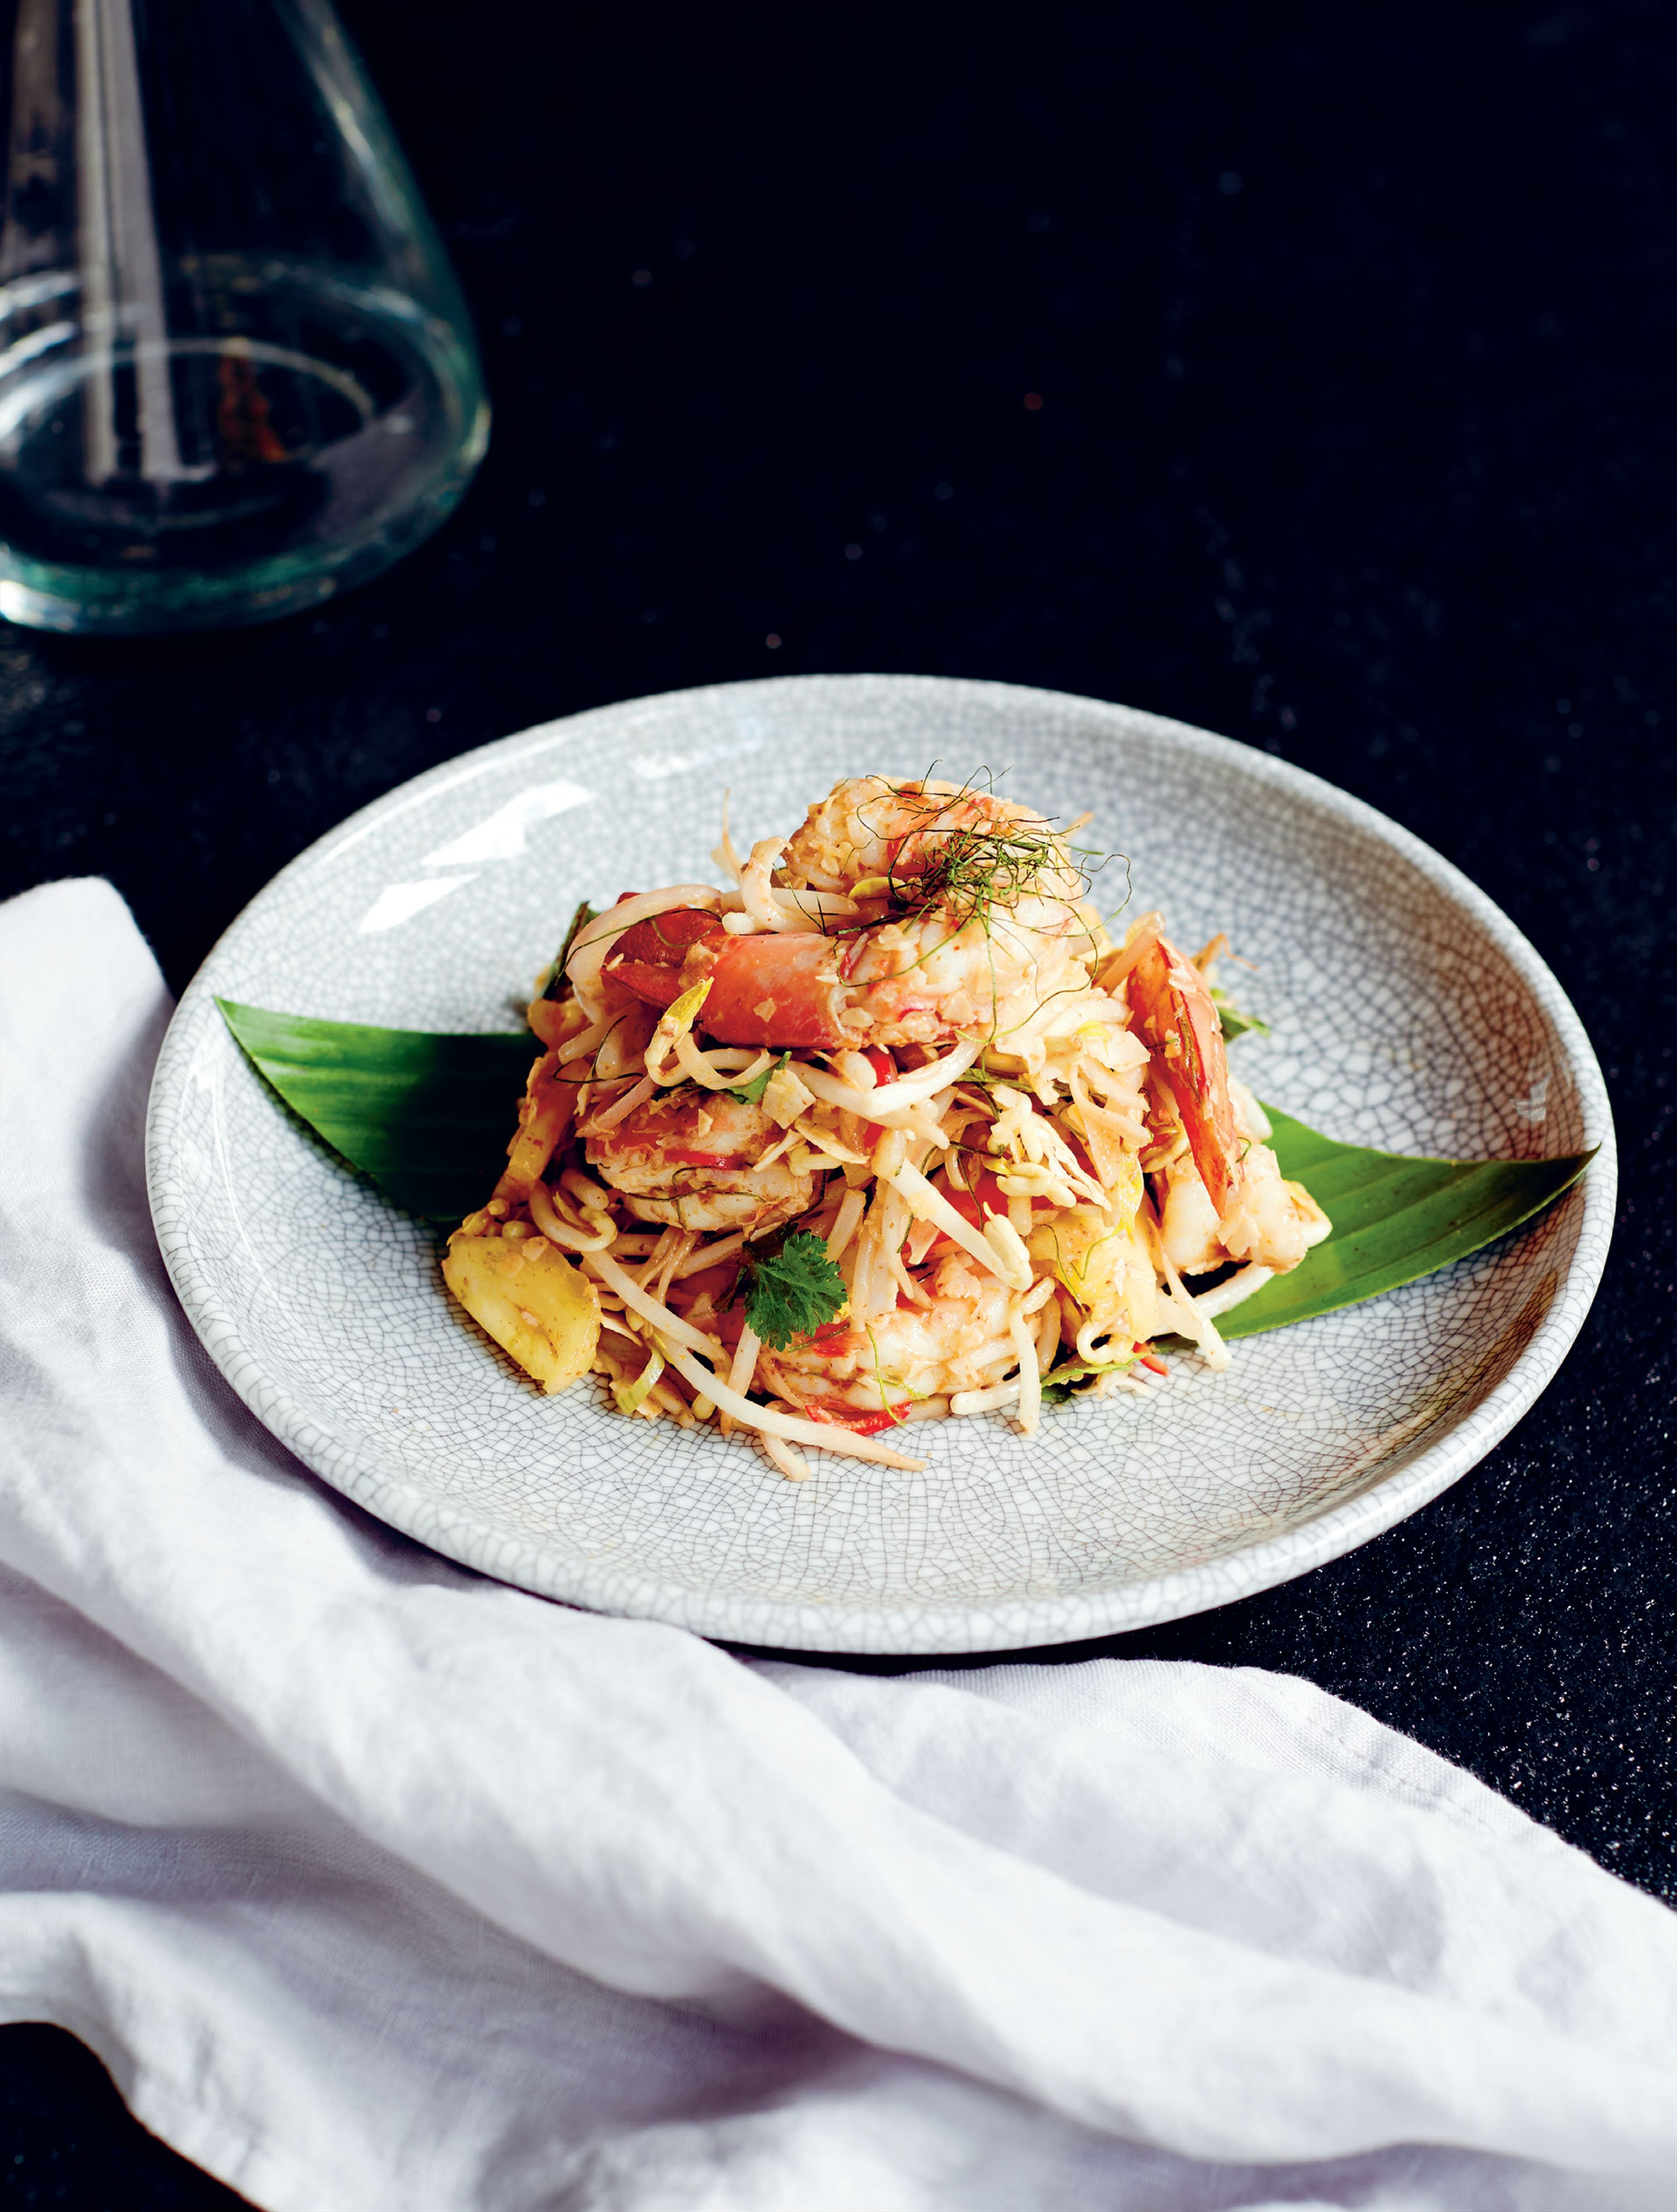 King prawn salad with chilli pineapple, bean sprouts & red curry dressing